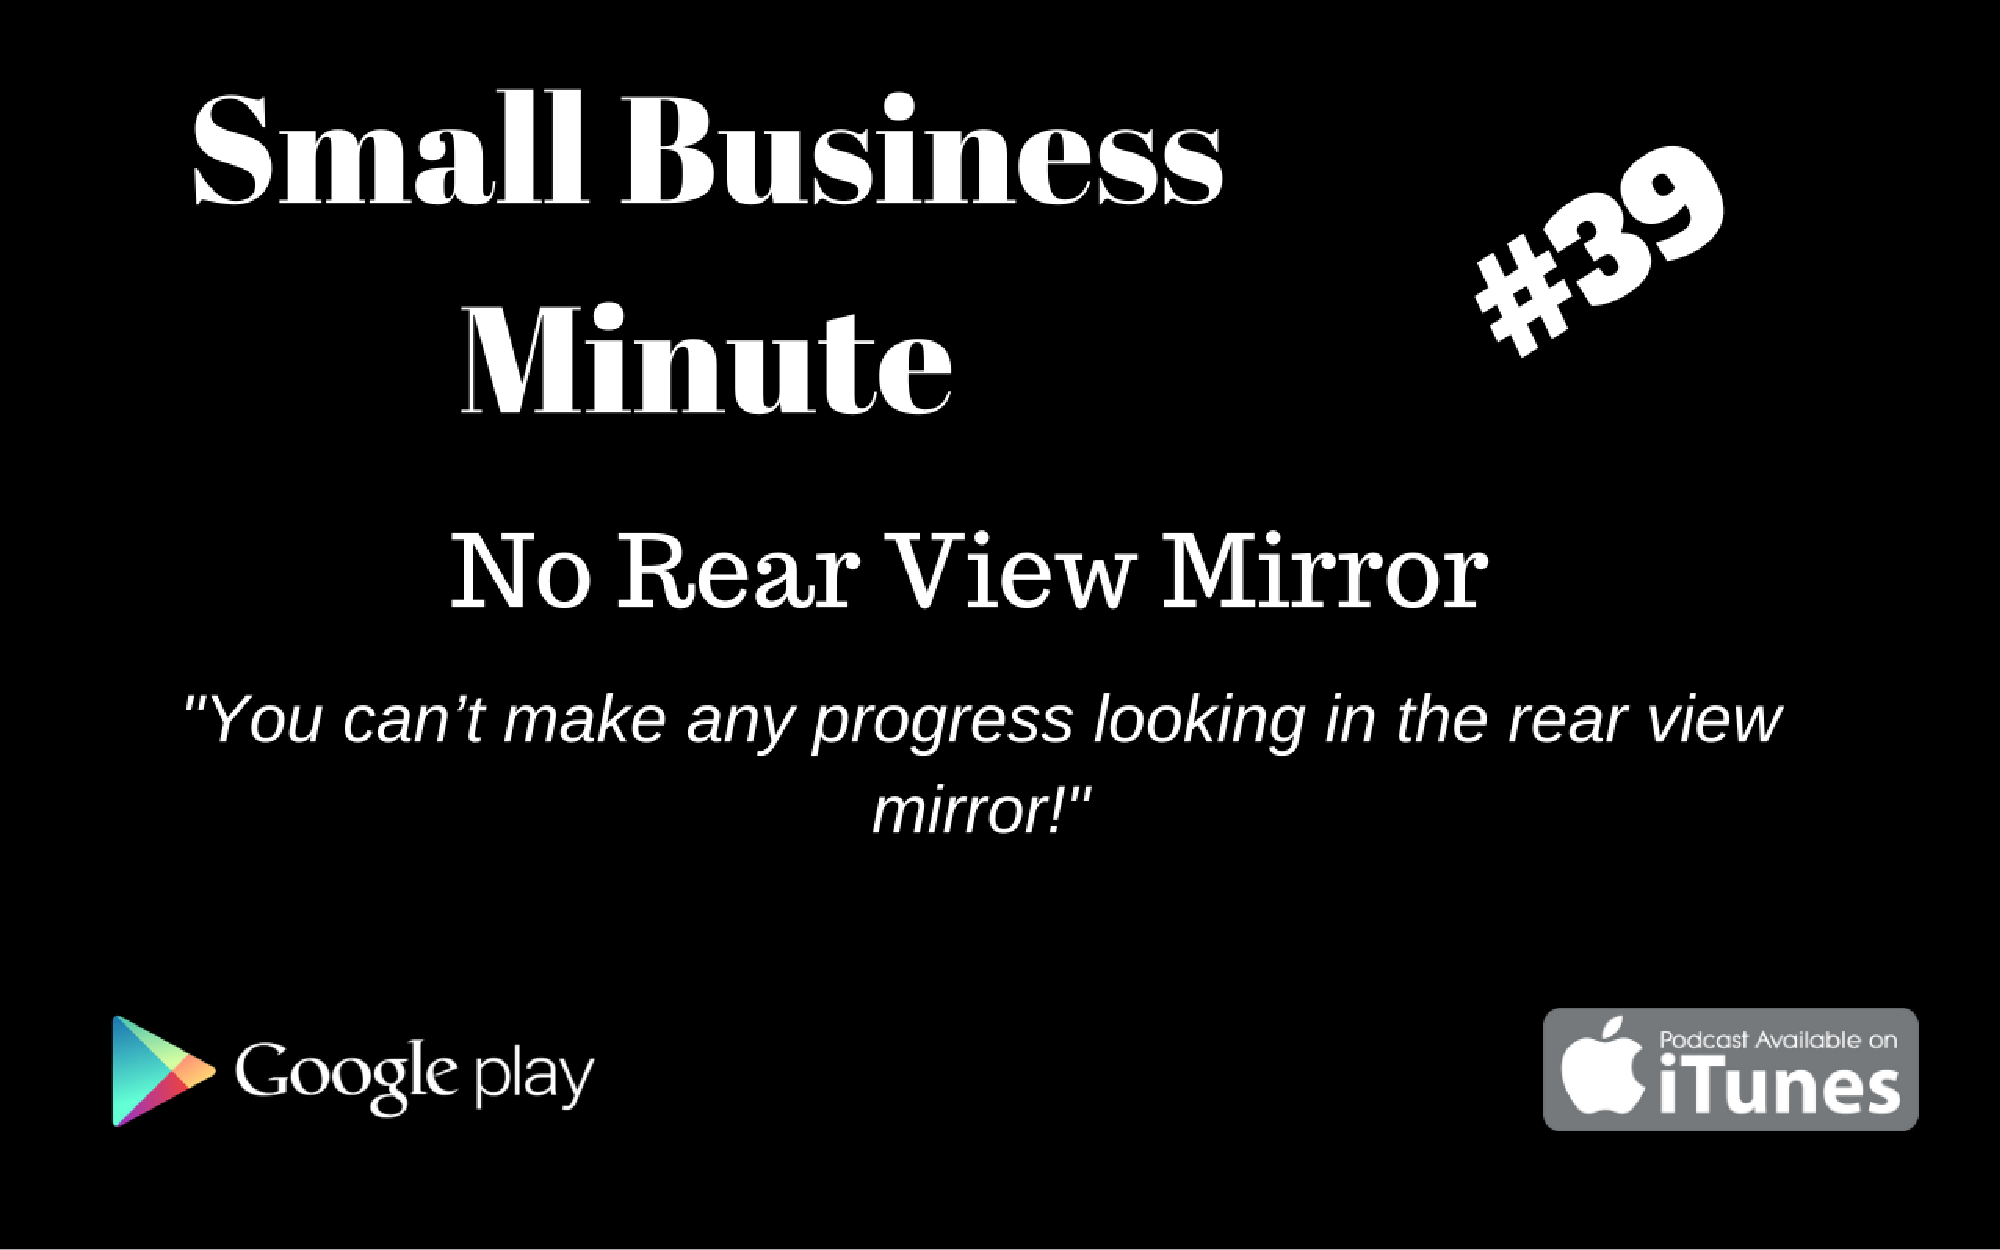 small-business-minute-39-no-rear-view-mirror